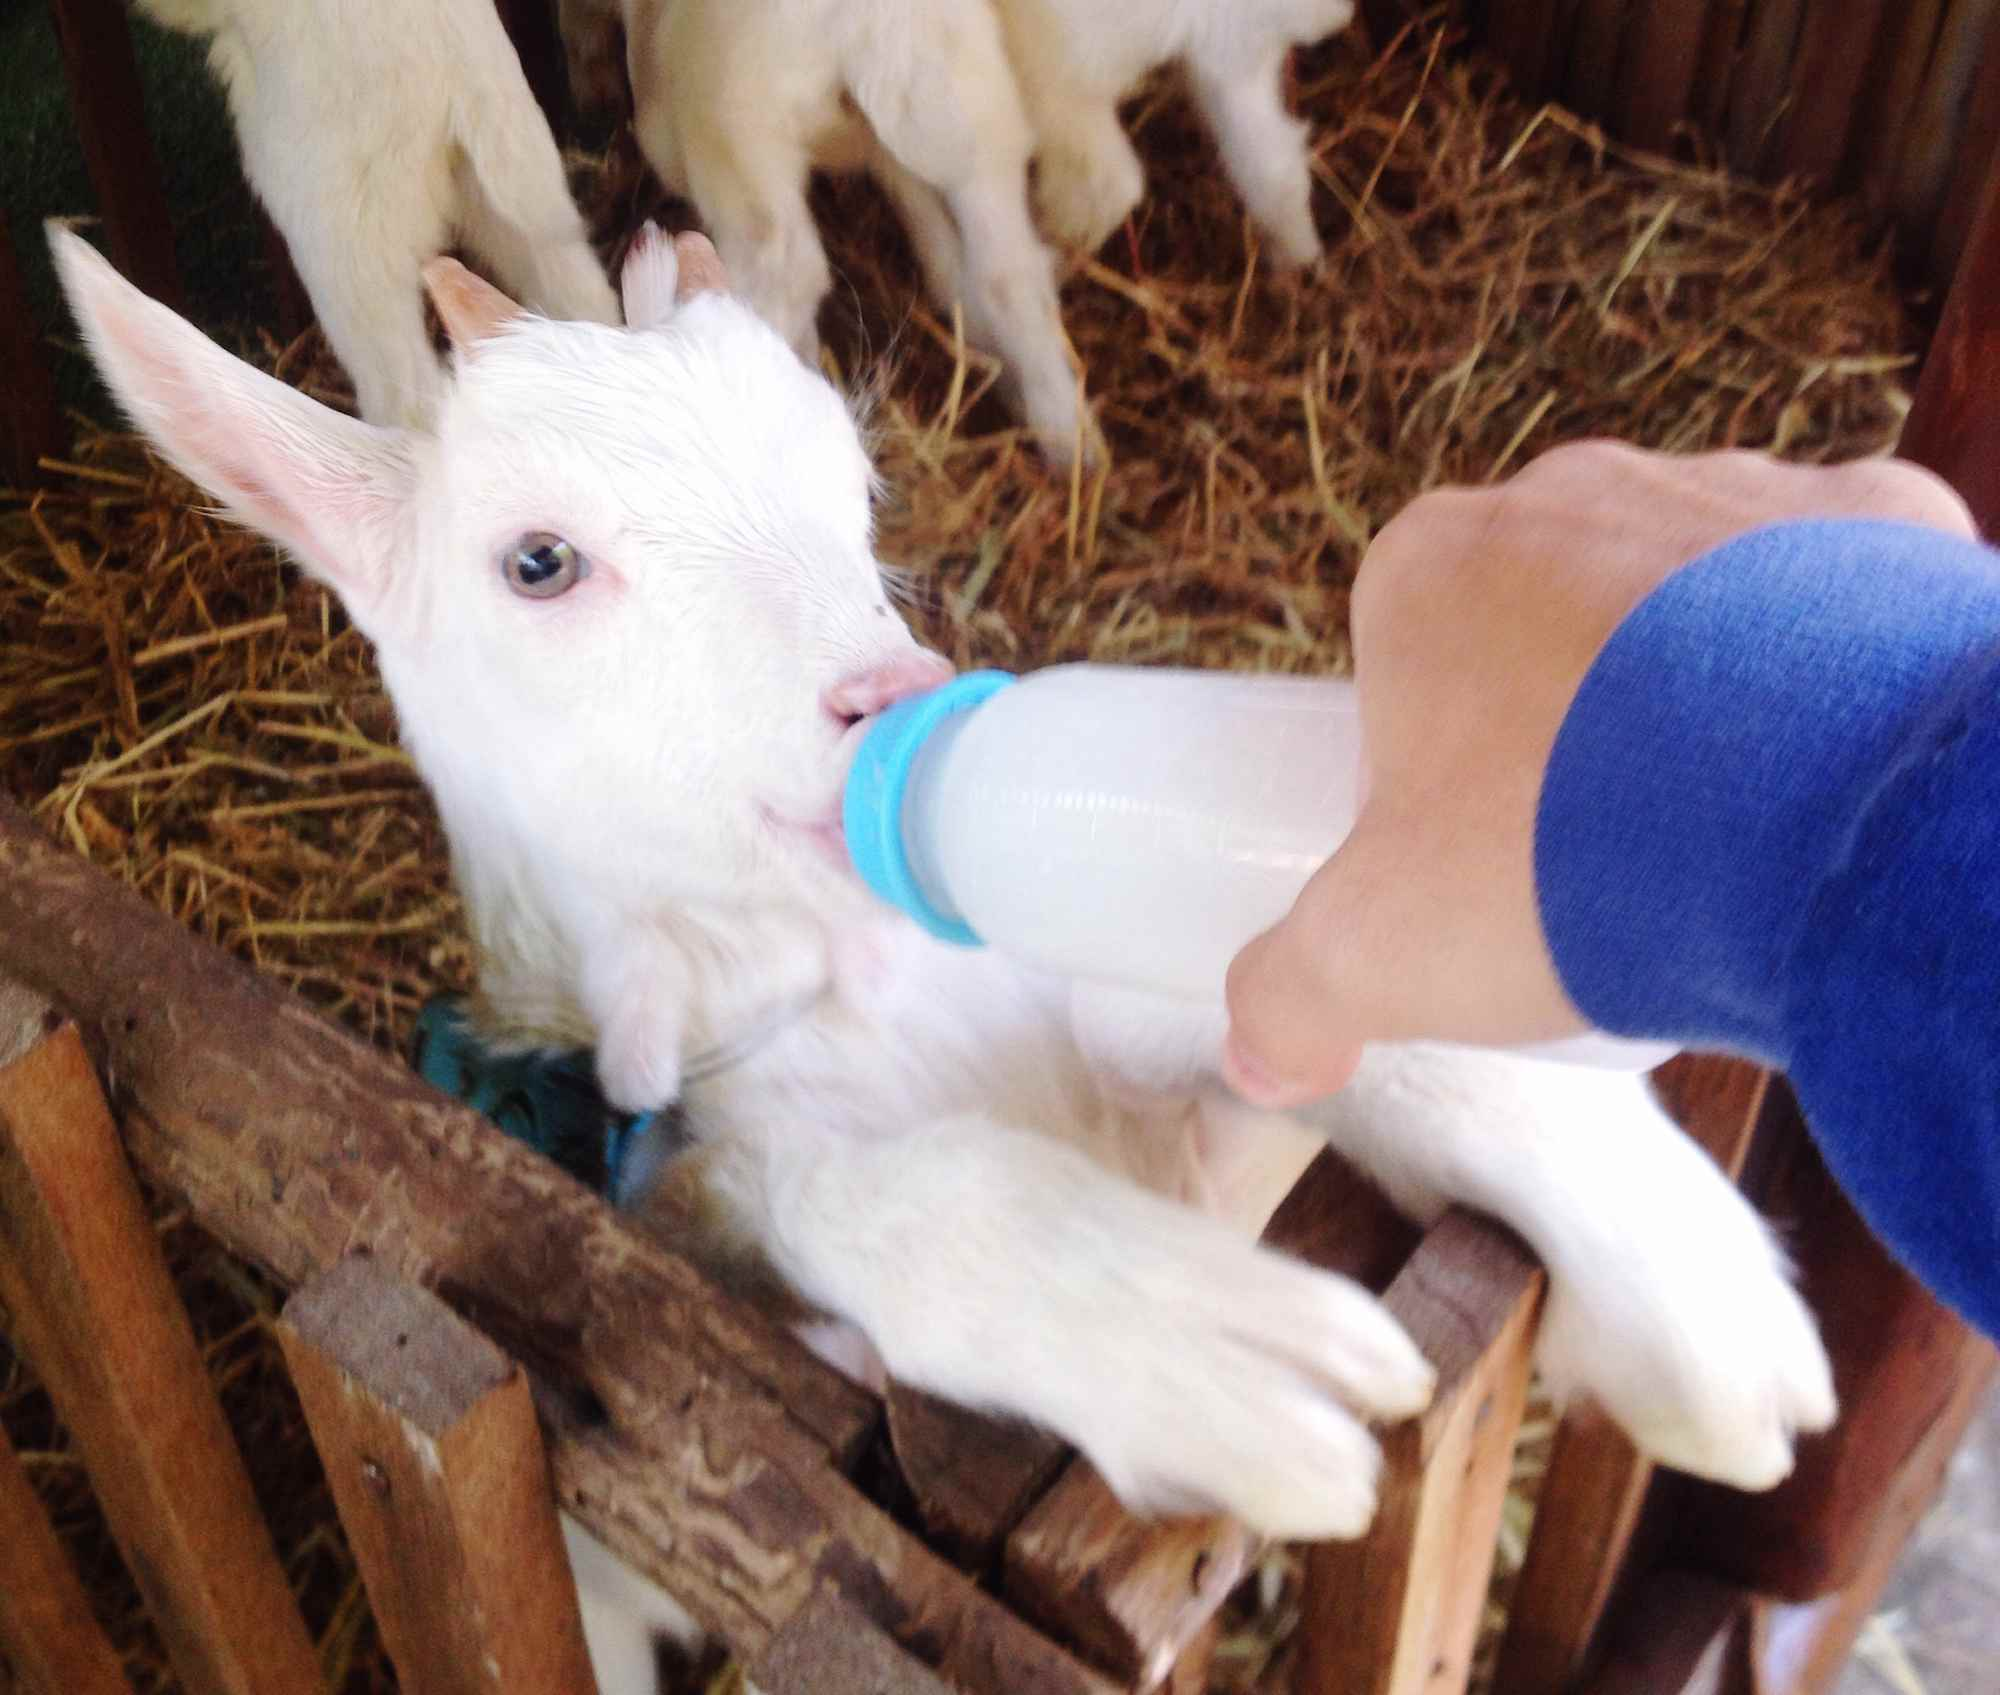 How to Raise and Care for Baby Goats